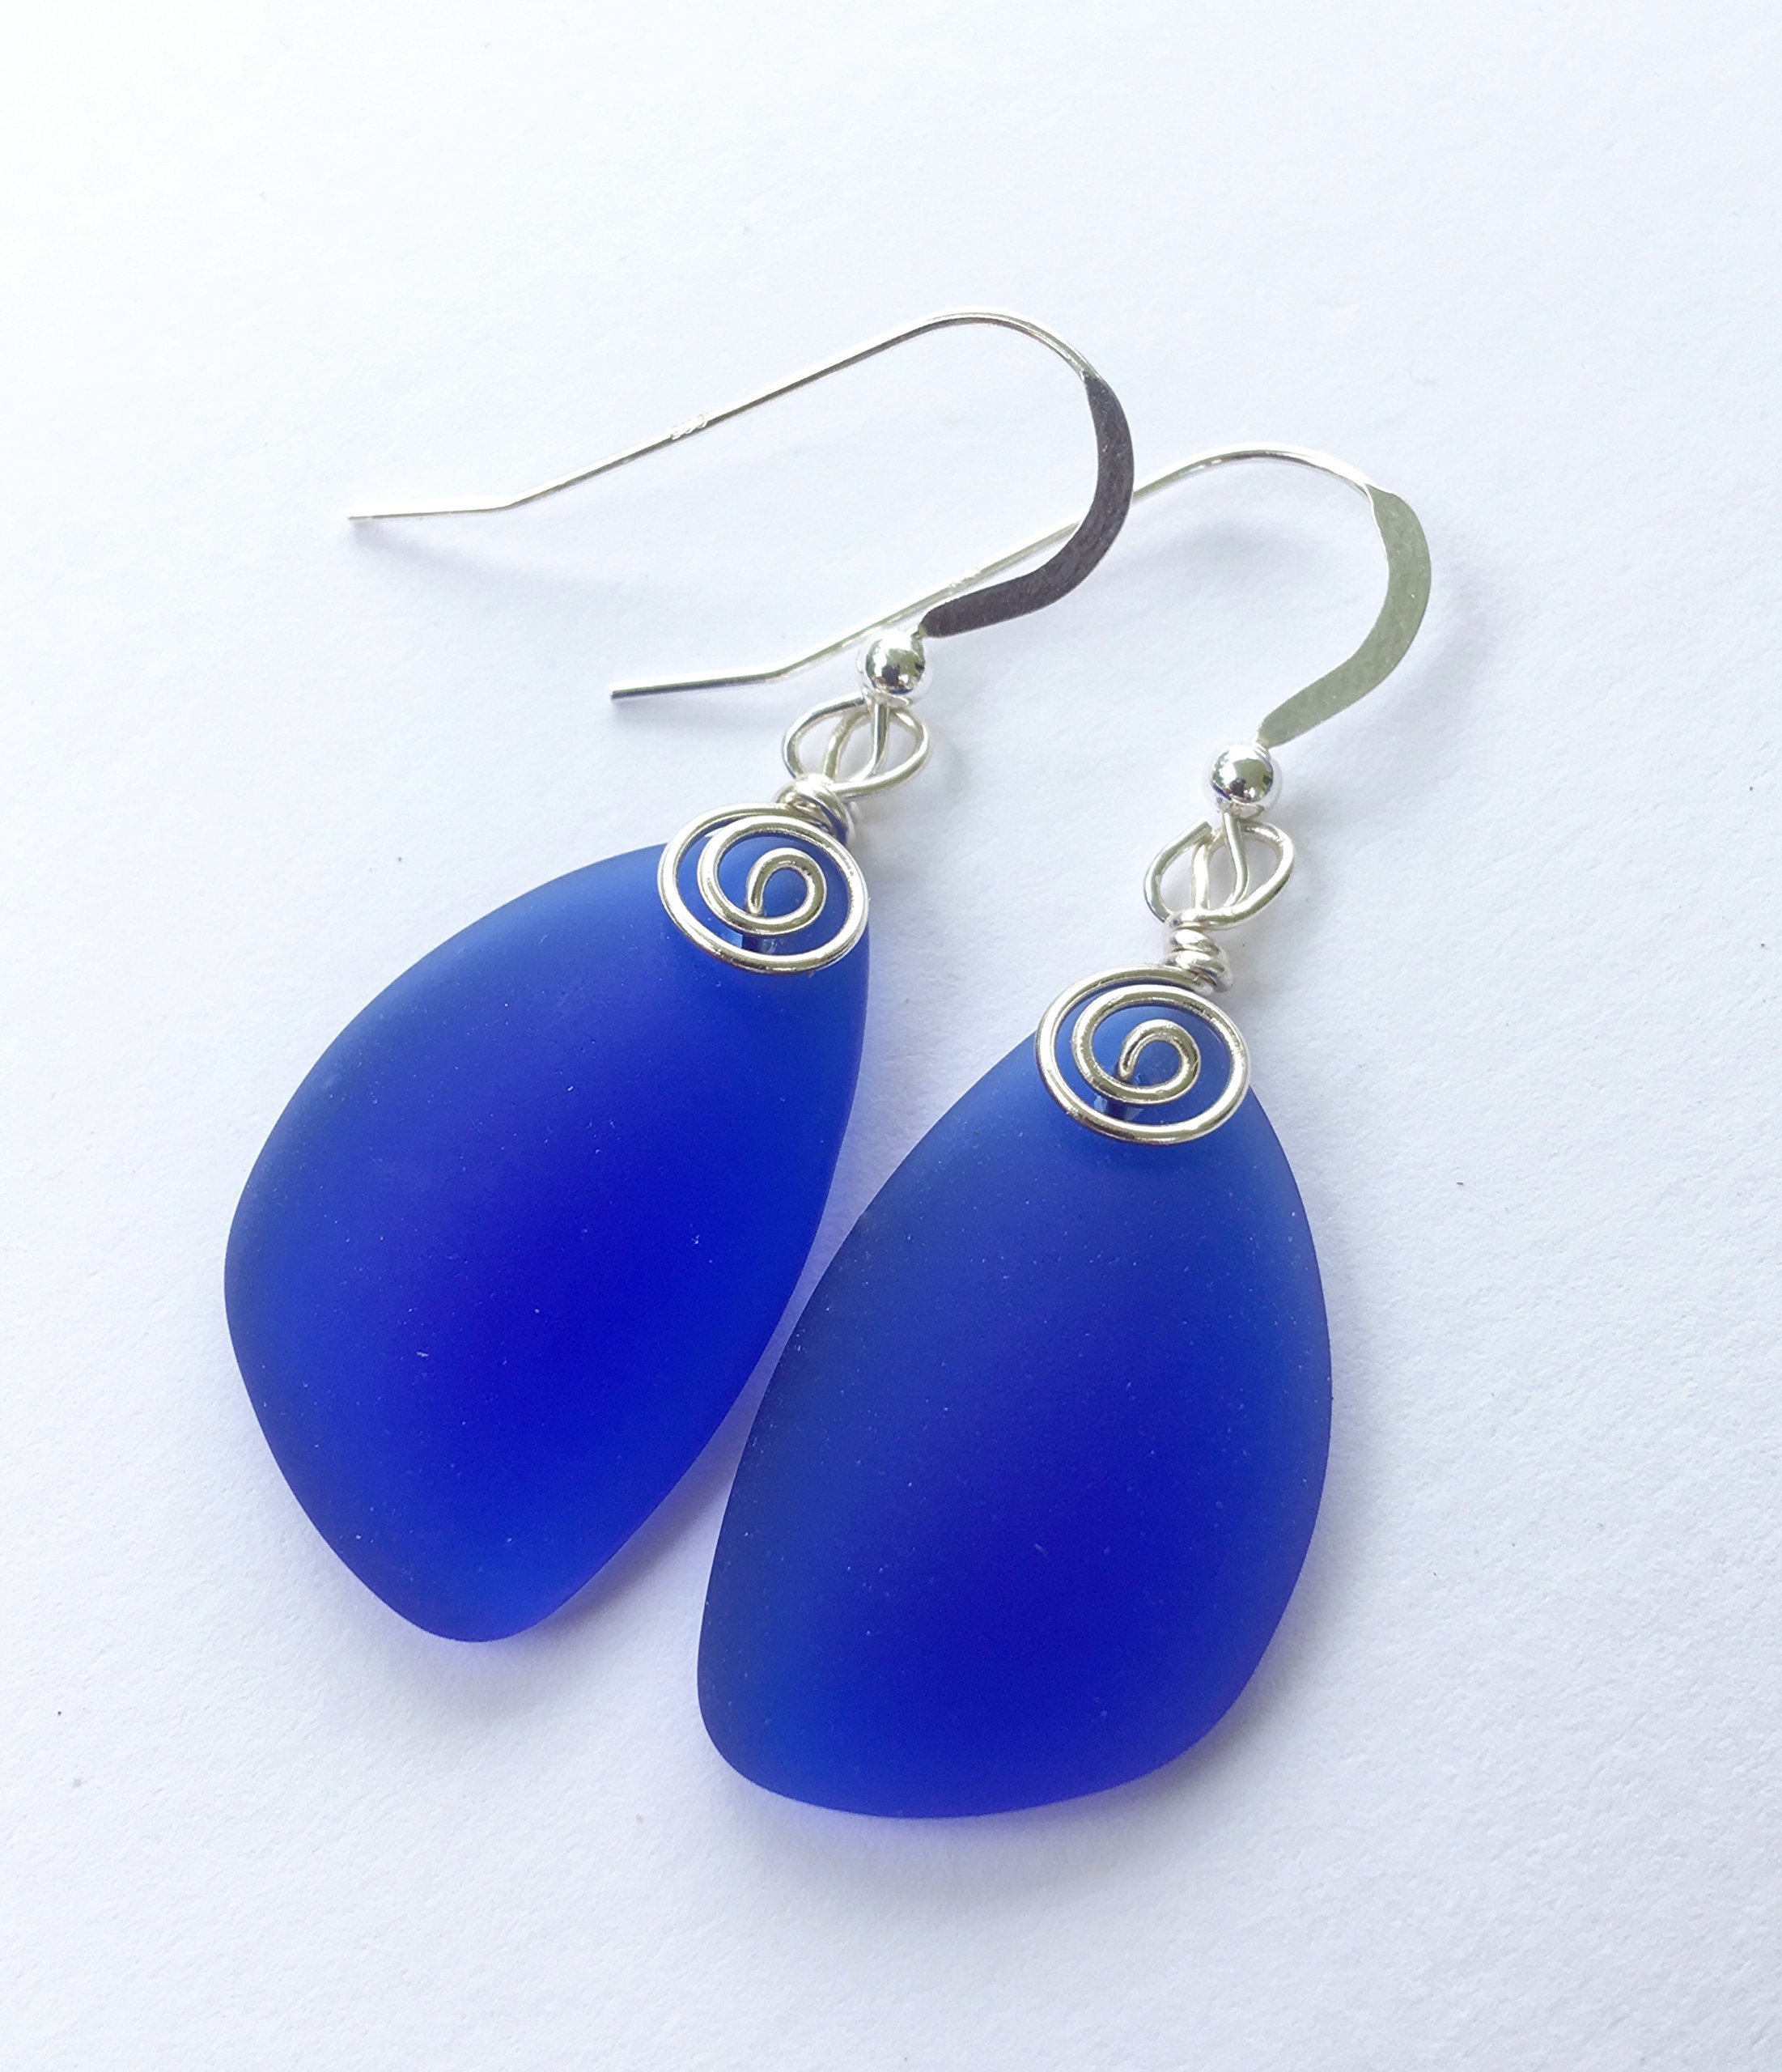 in cobalt glass annneve blue dress ann n eve style earring earrings dangling